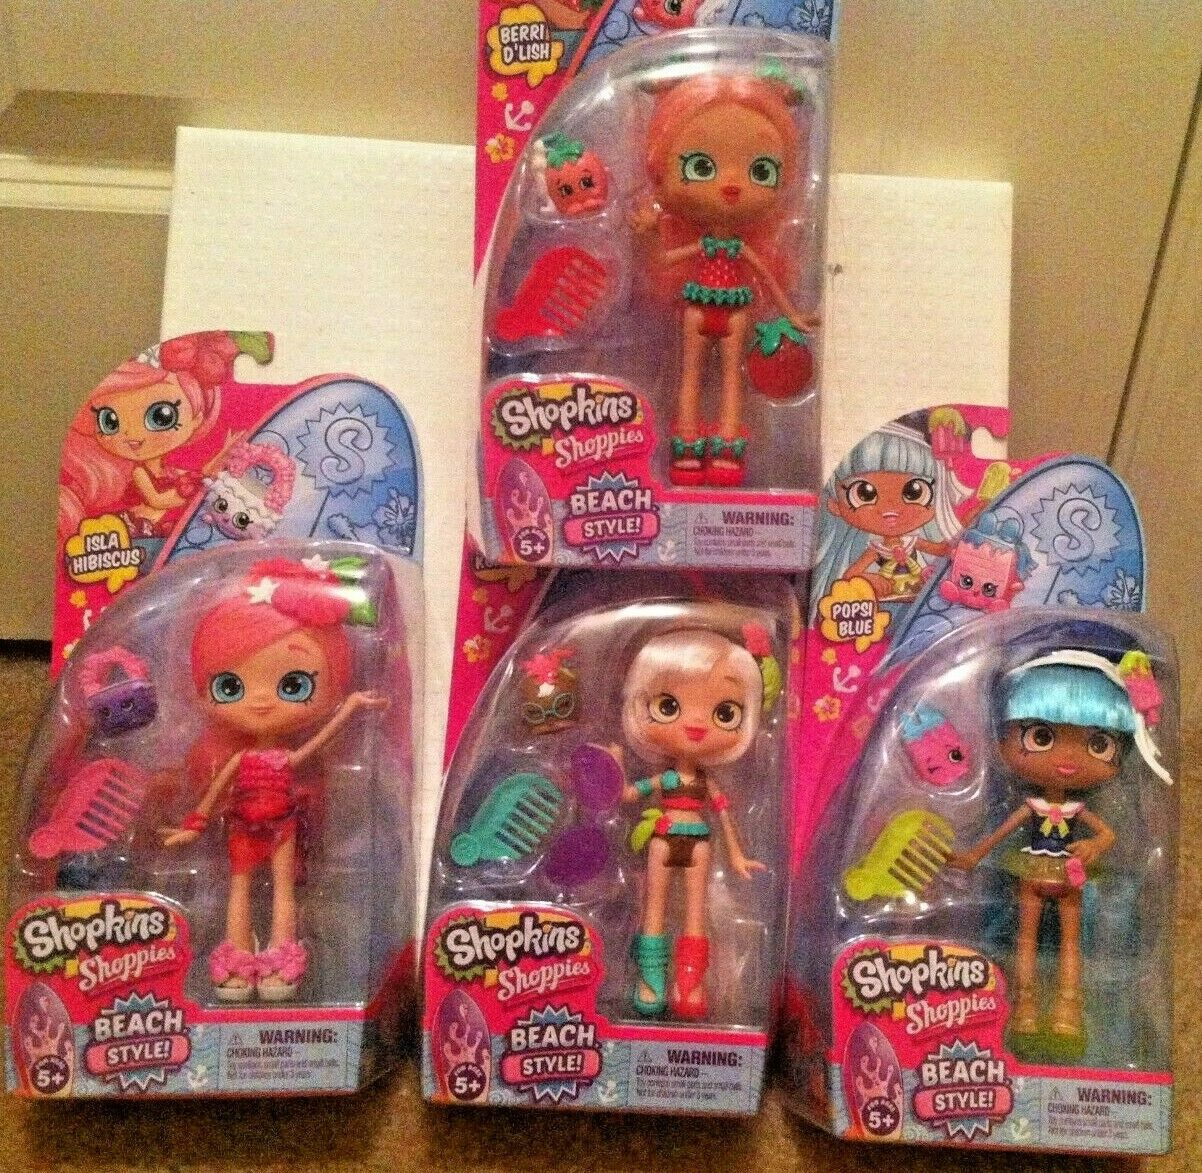 Shopkins Shoppies  Beach Style  Dolls 4 Doll SET-BRAND NEW IN BOX